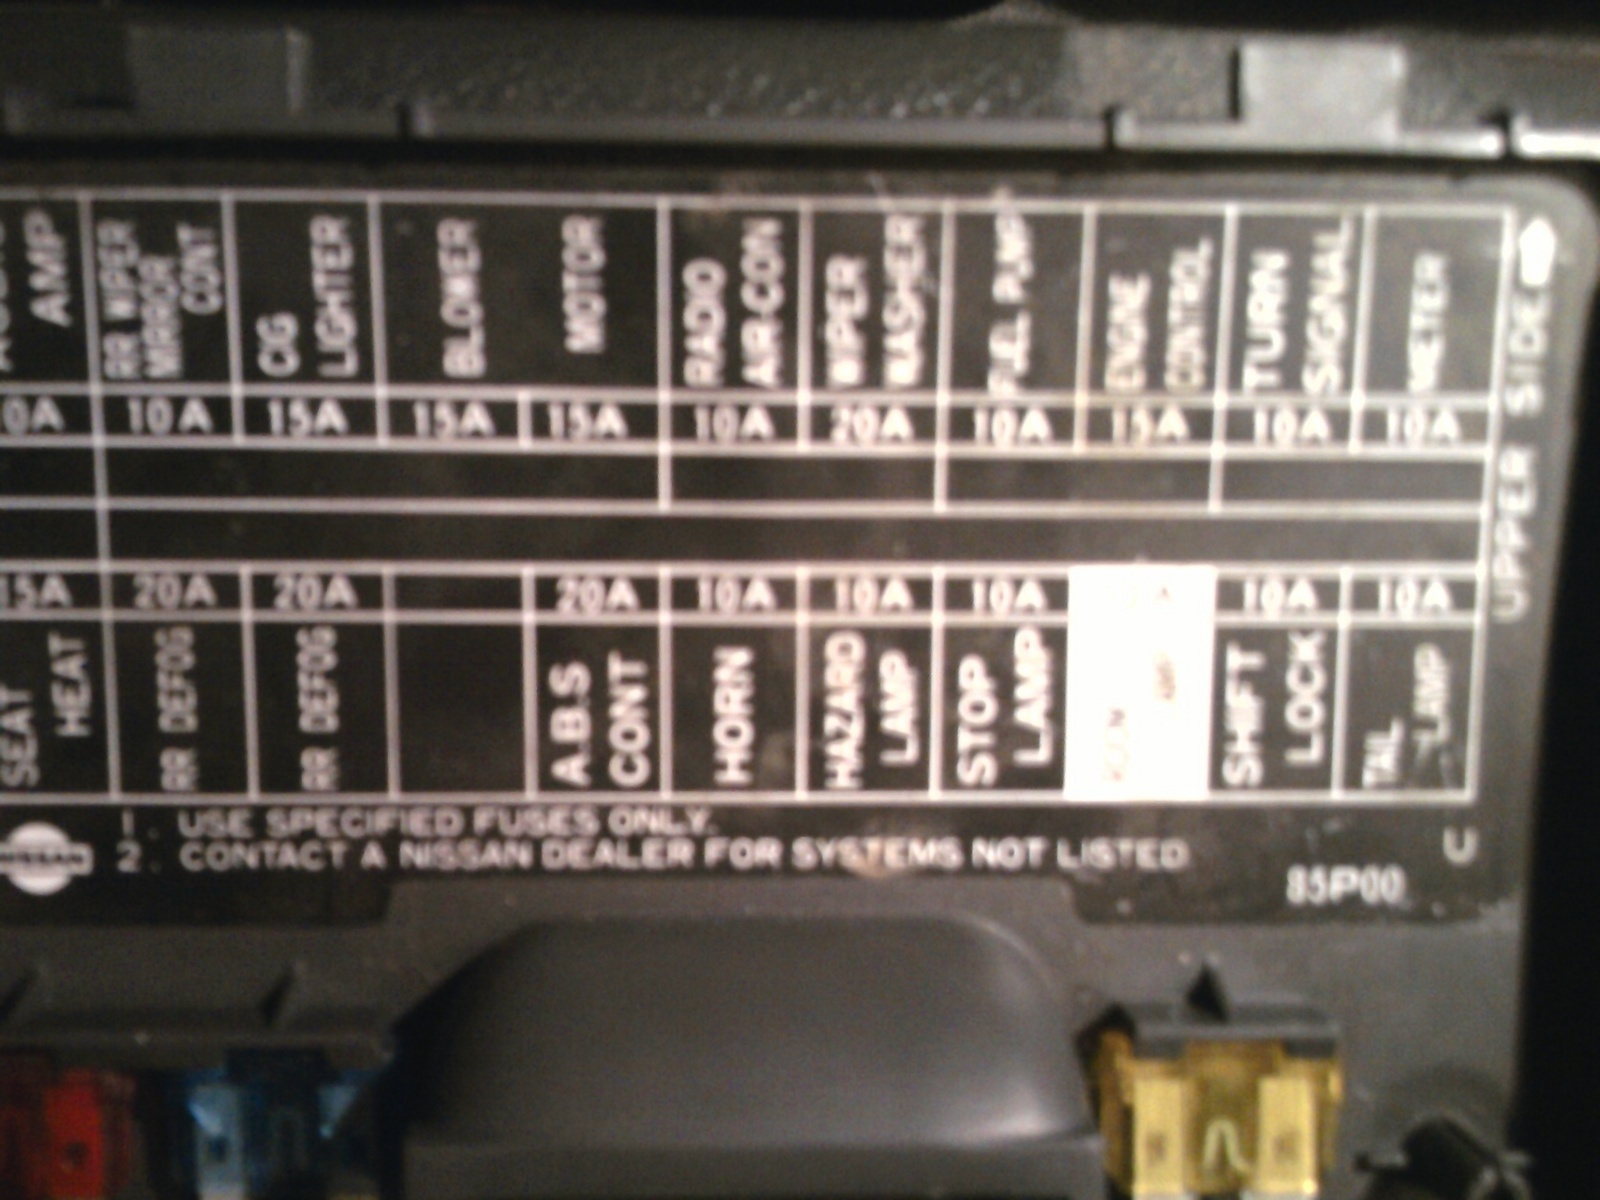 86 Nissan Pickup Fuse Box Wiring Diagrams Toyota Diagram Questions Where Is The For Hazard Lights On Rh Cargurus Com 84